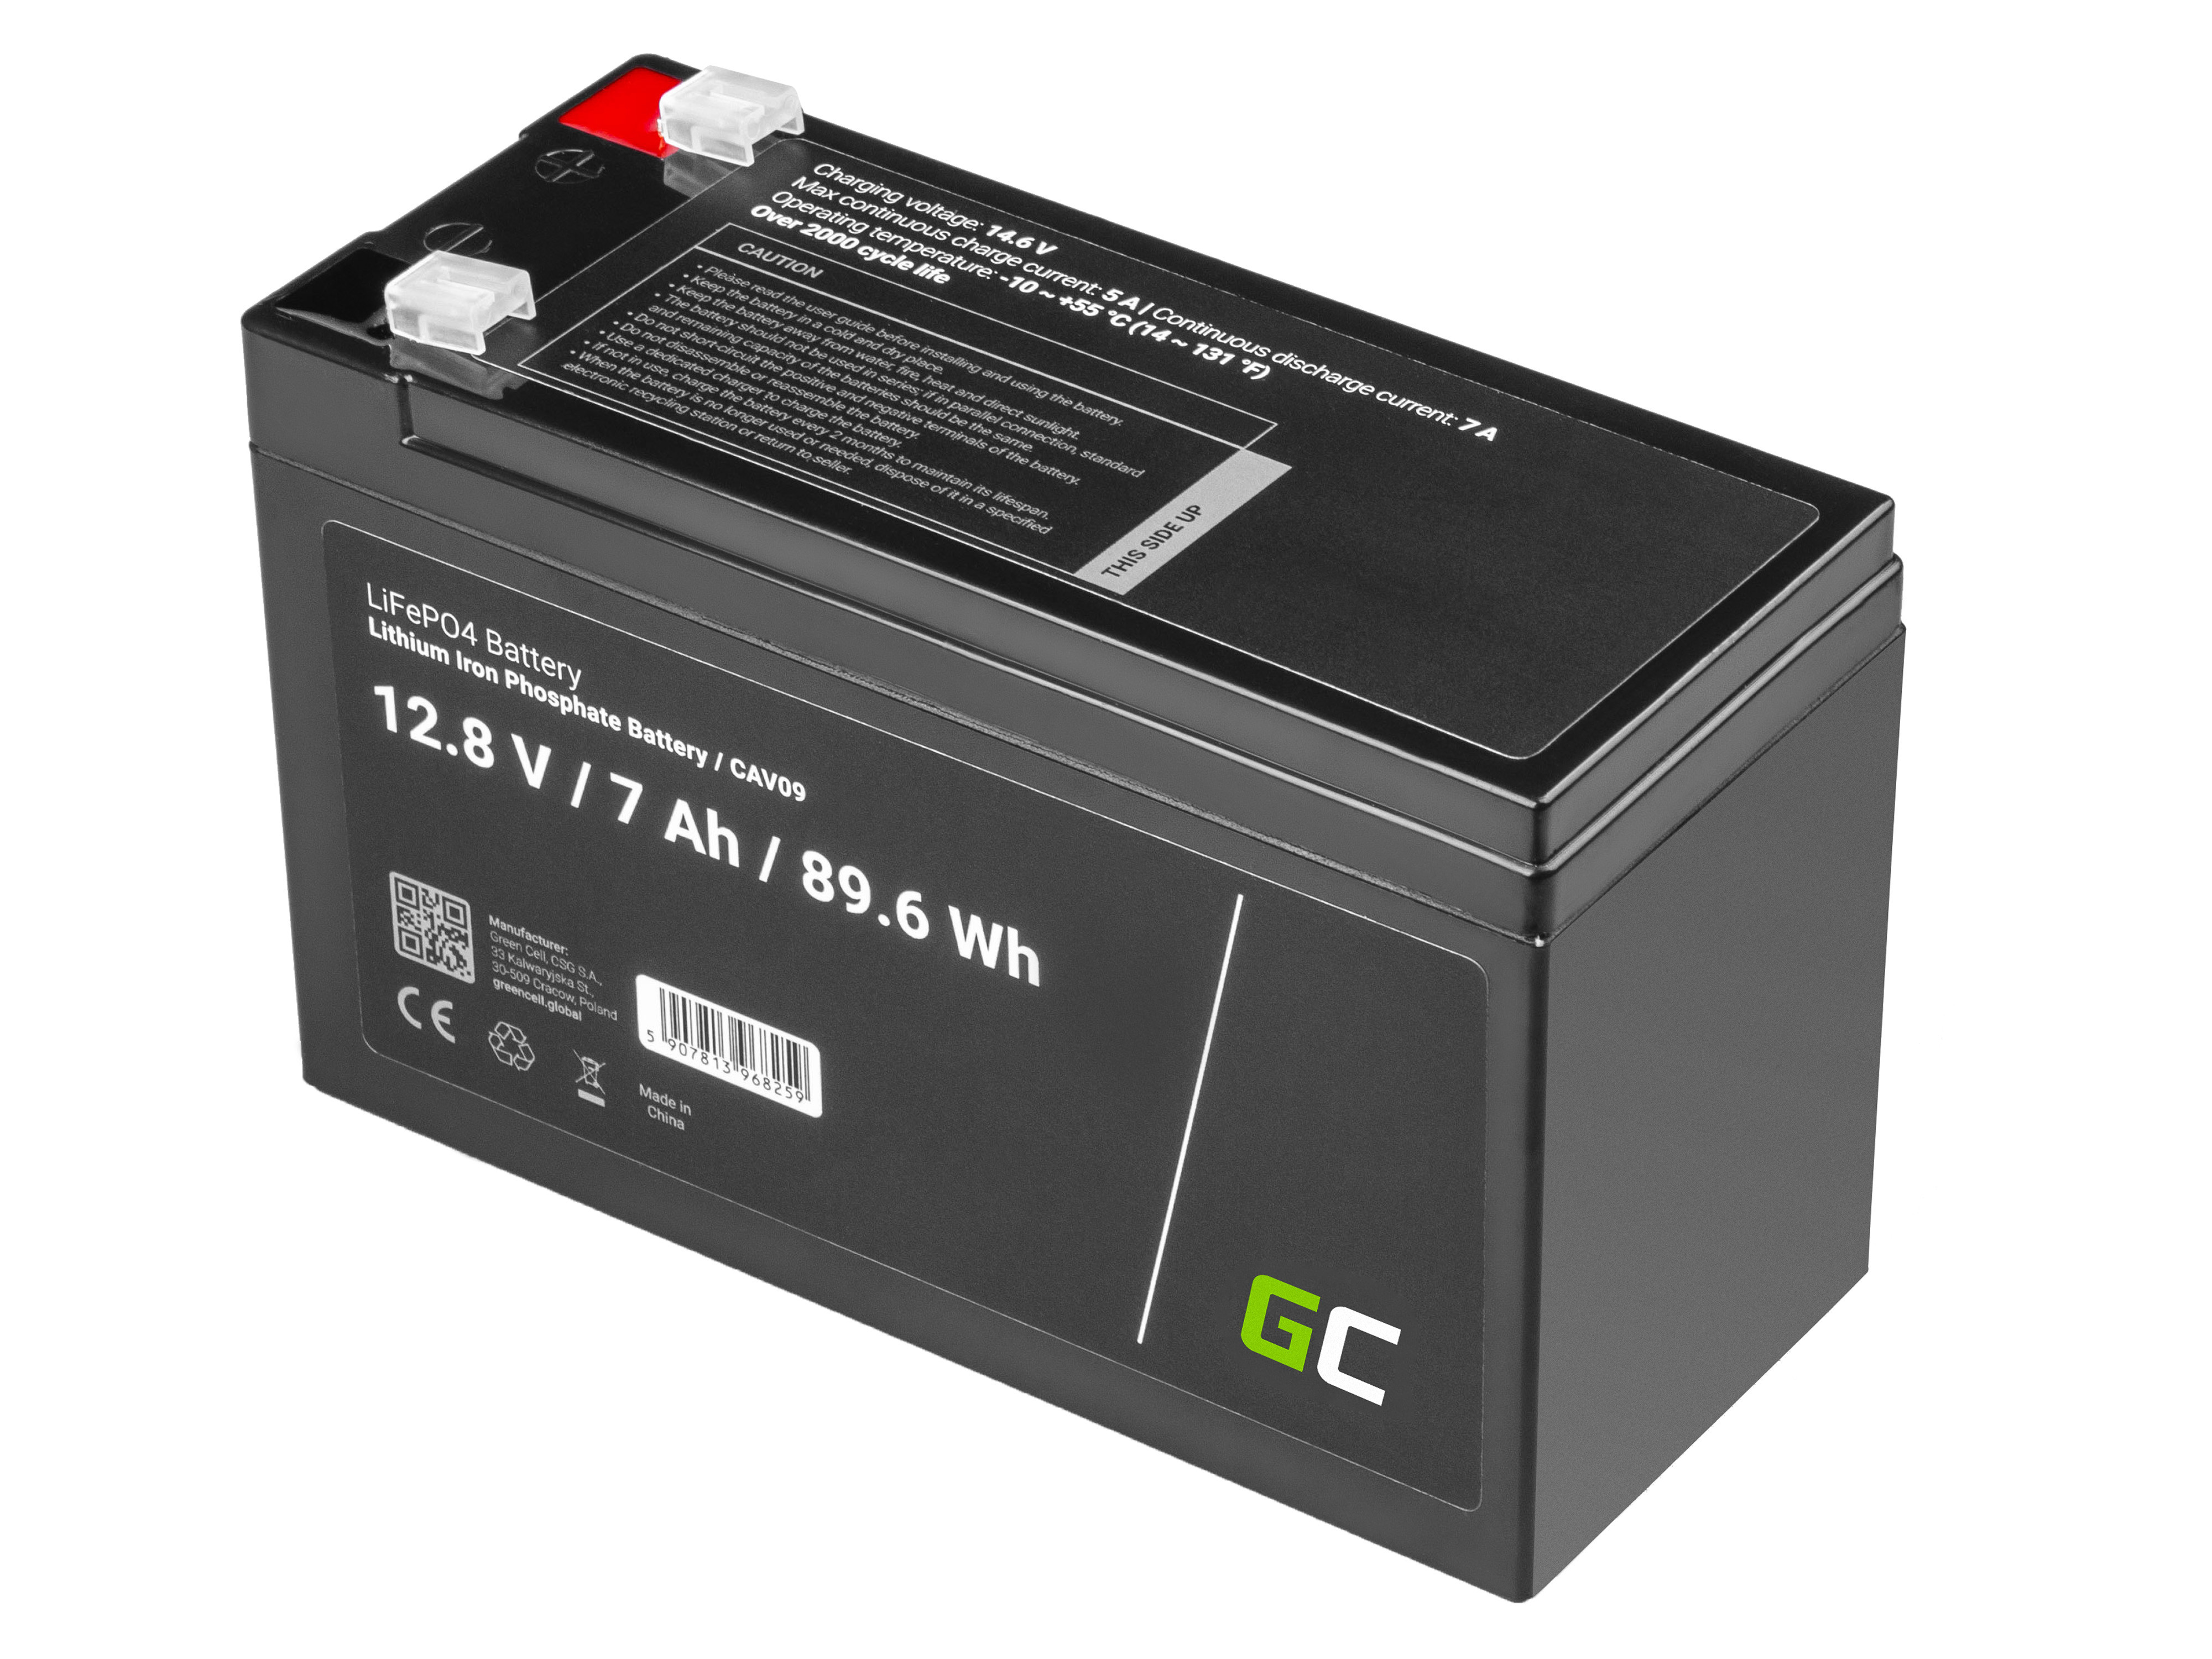 Battery Lithium-iron-phosphate LiFePO4 Green Cell 12V 12.8V 7Ah for photovoltaic system, campers and boats